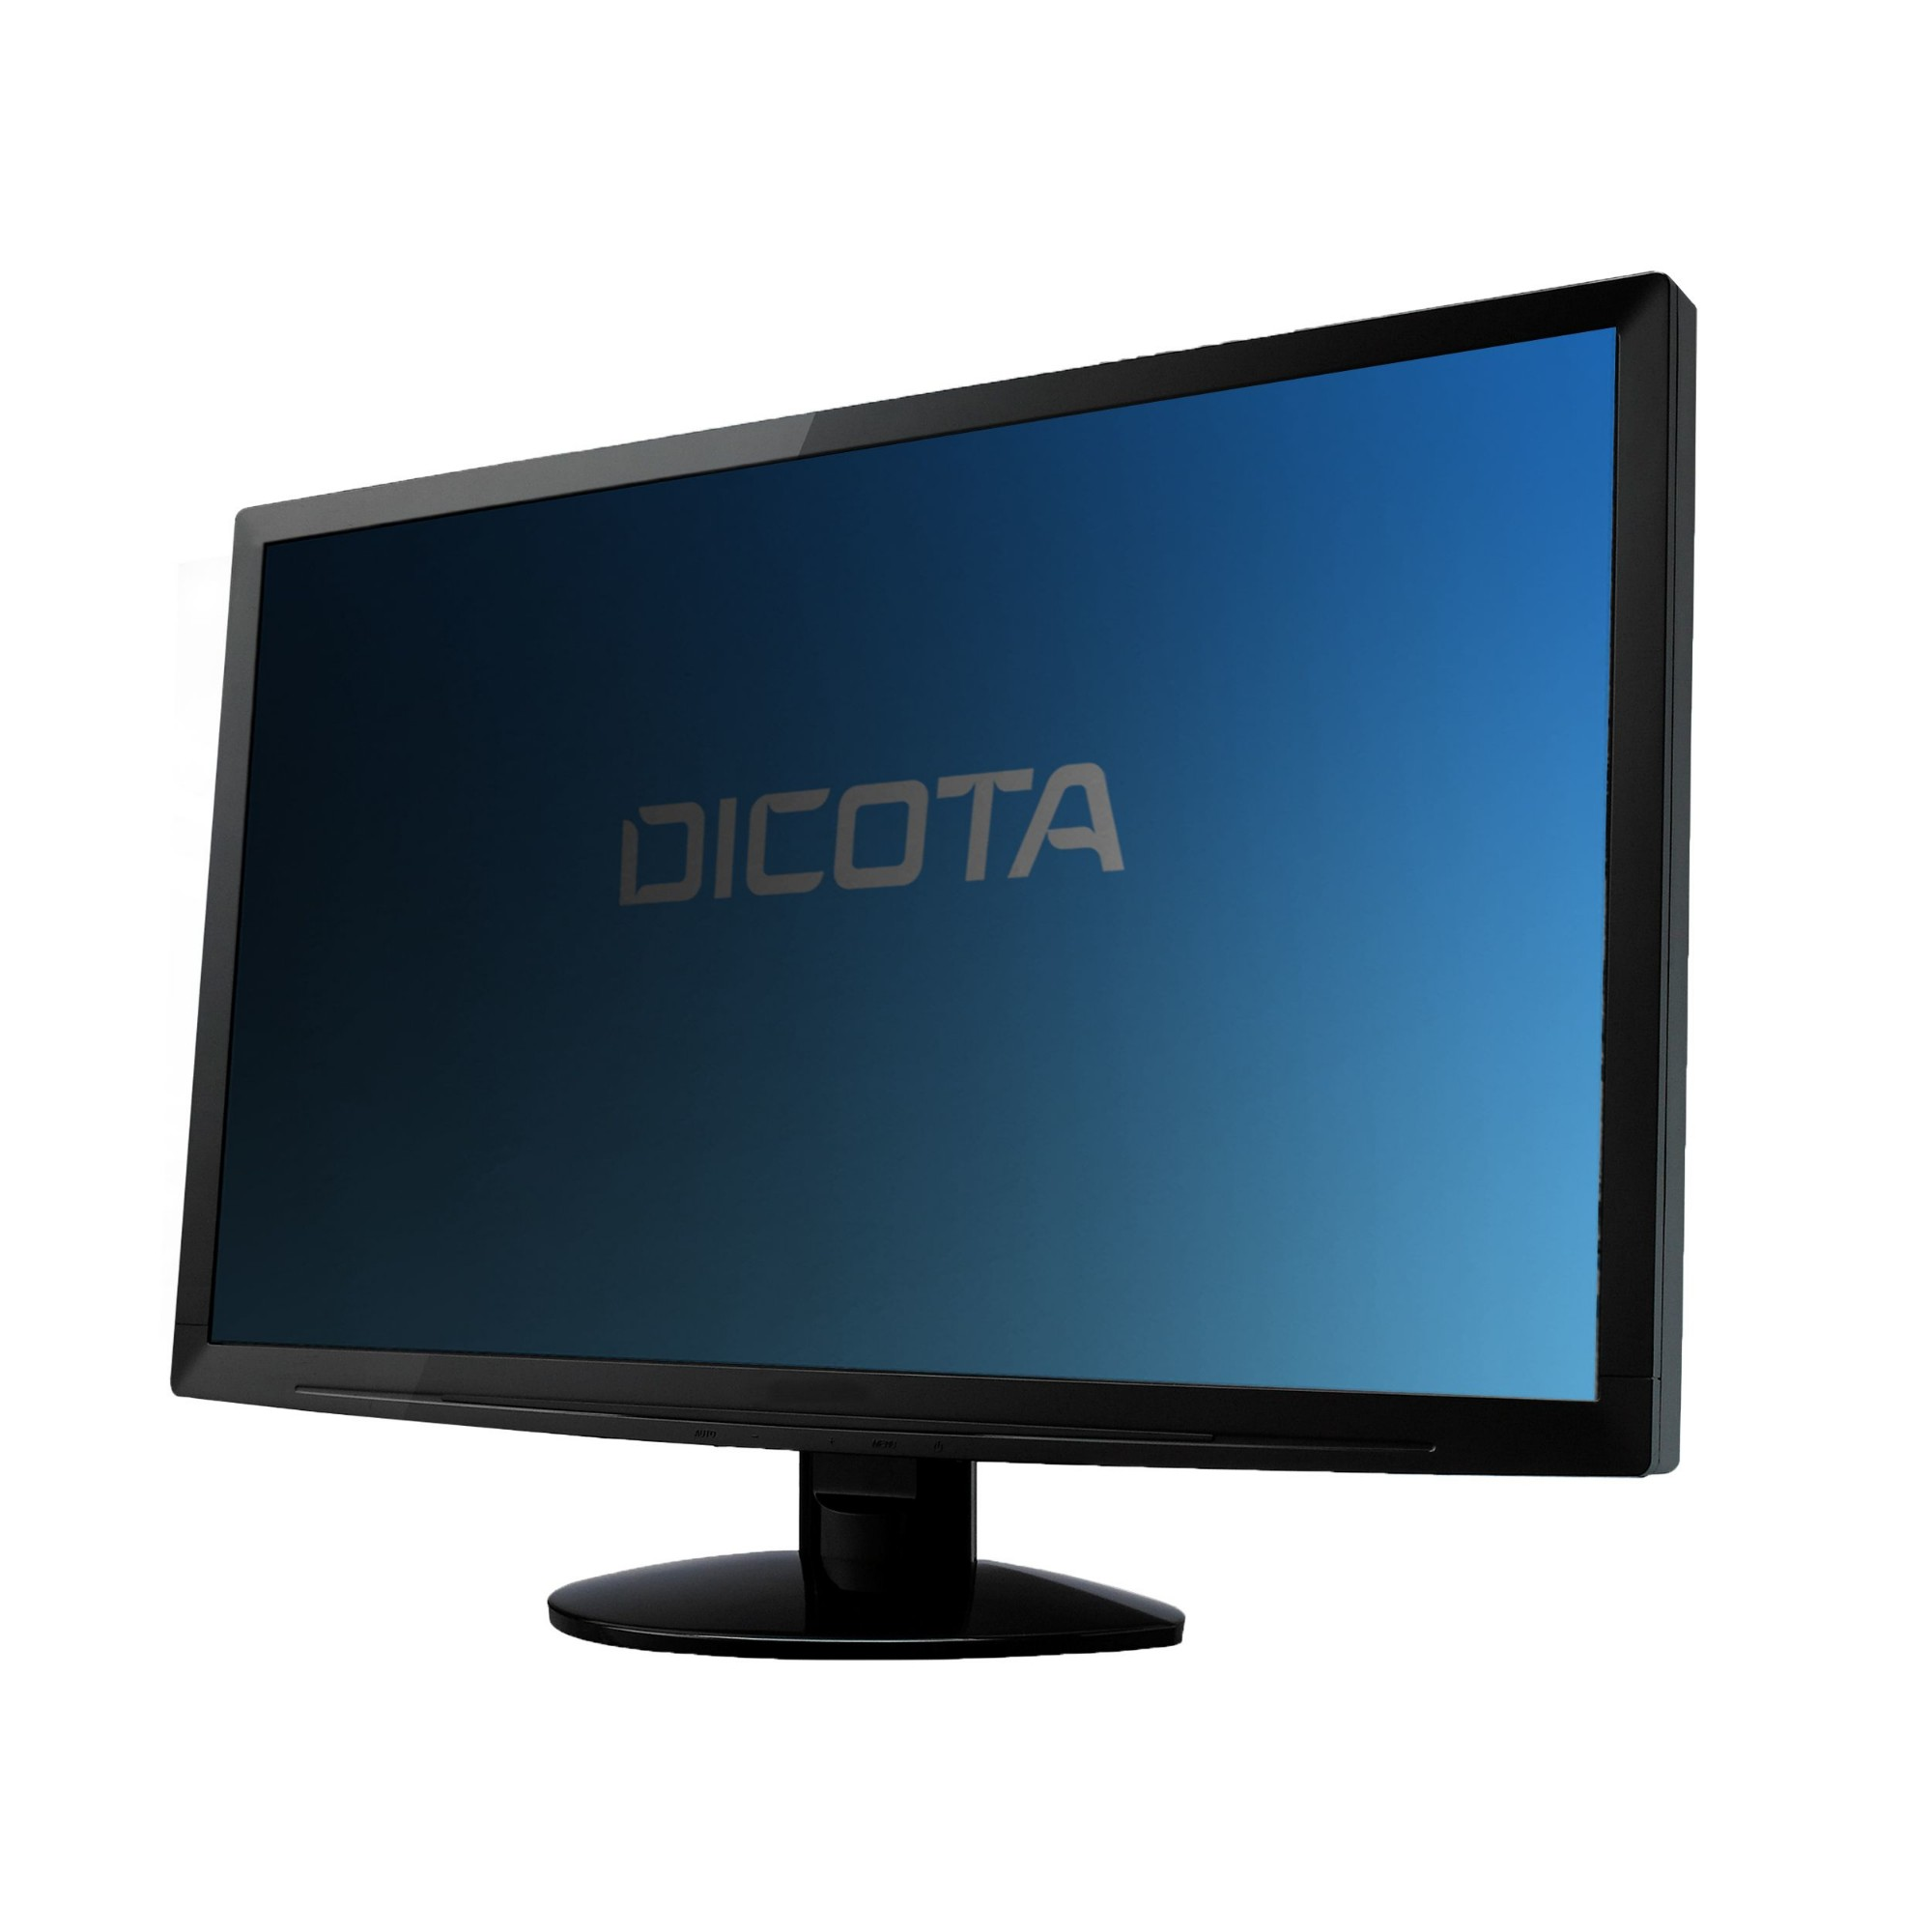 Dicota D70148 display privacy filters Frameless display privacy filter 61 cm (24